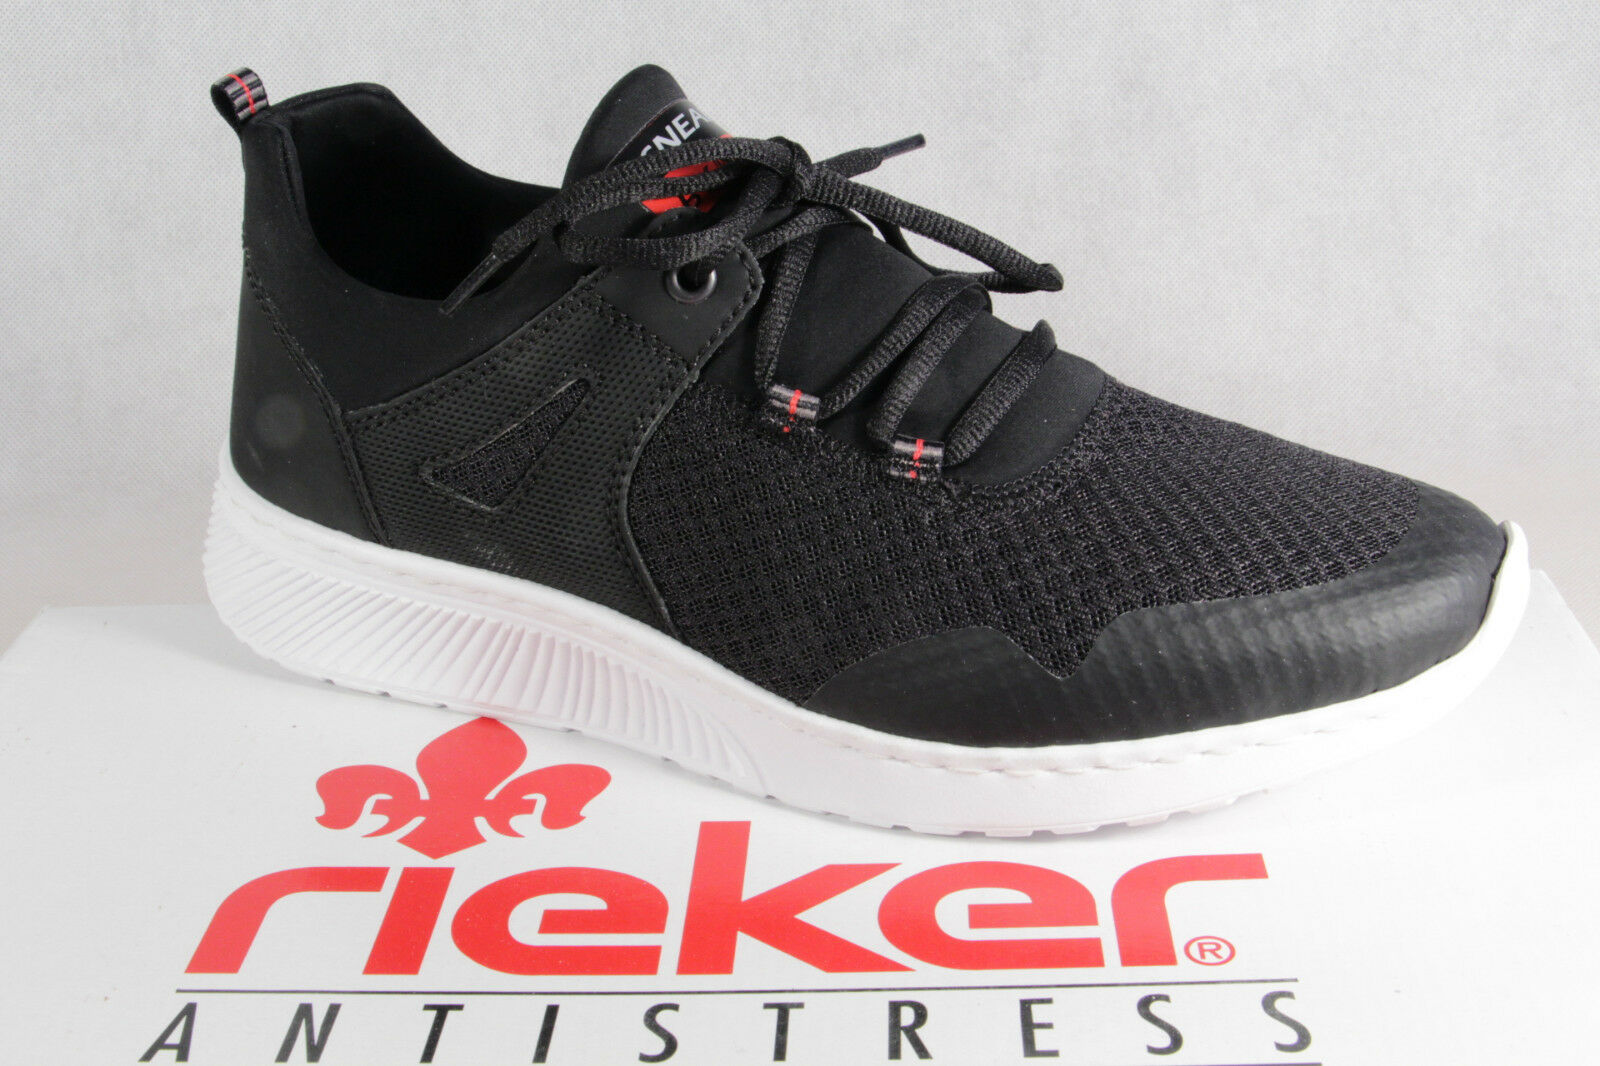 Rieker Slip on shoes Lace up Sneaker Black New